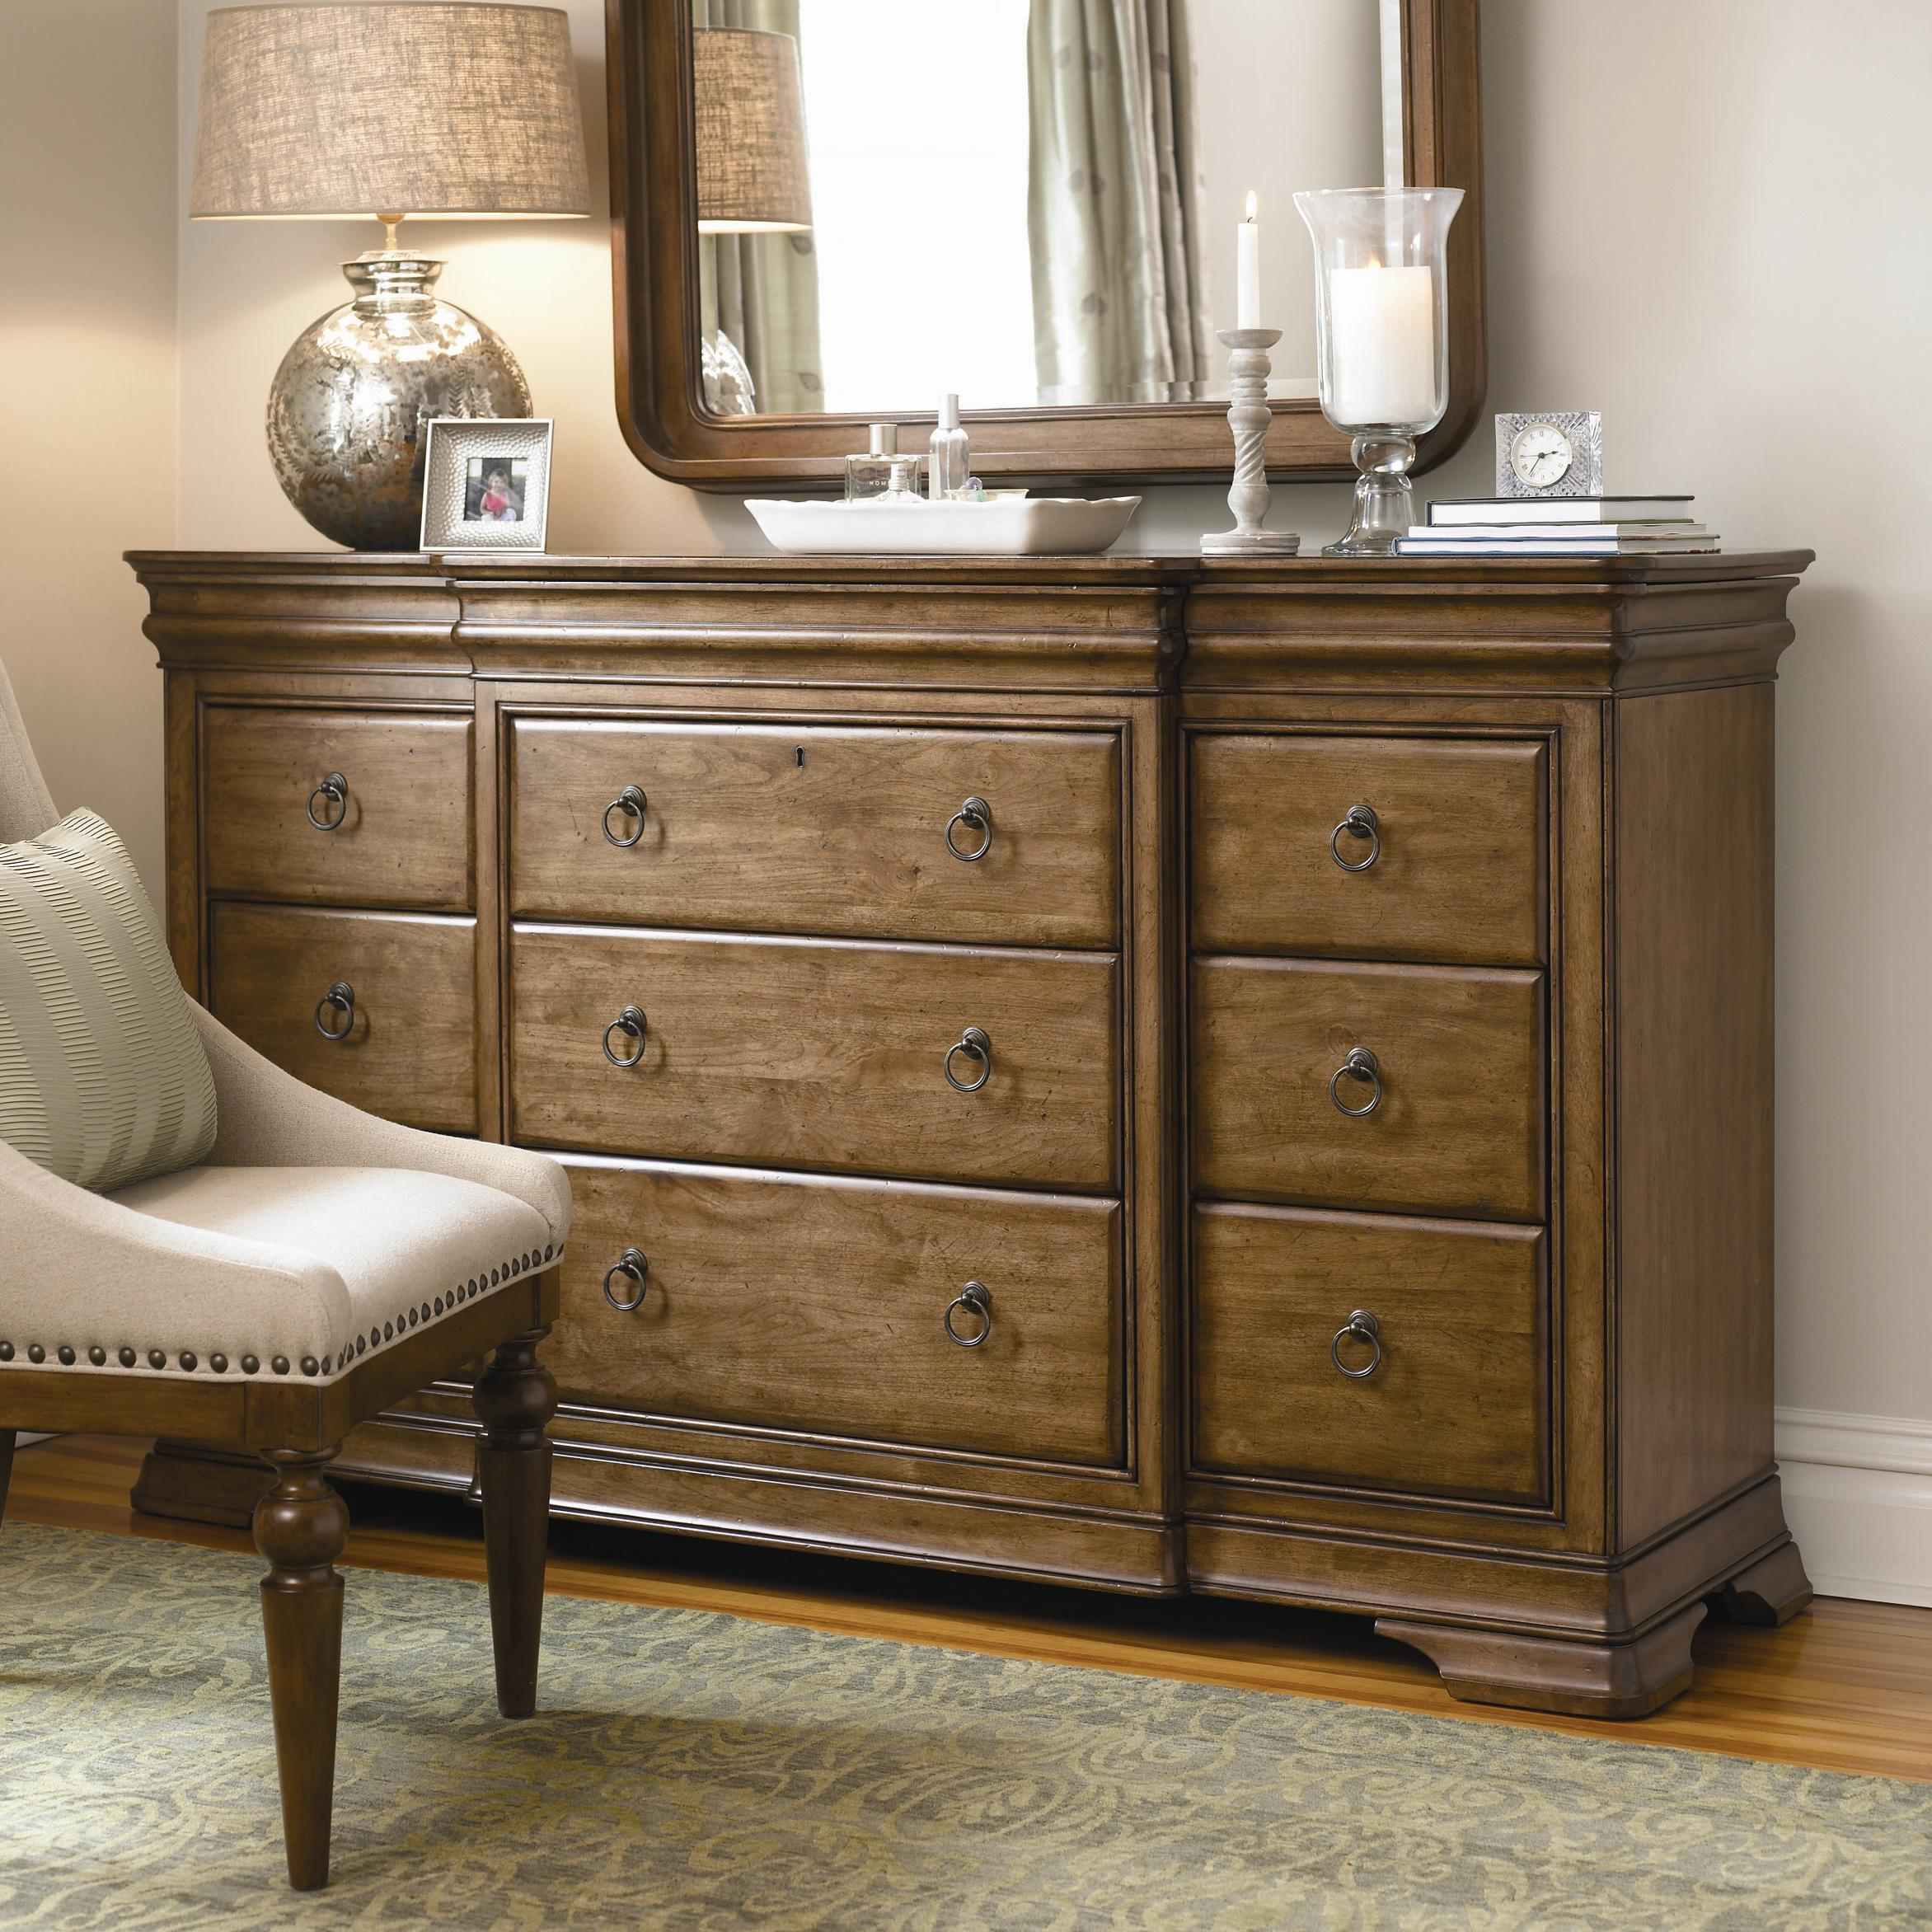 New Lou Drawer Dresser by Universal at Baer's Furniture